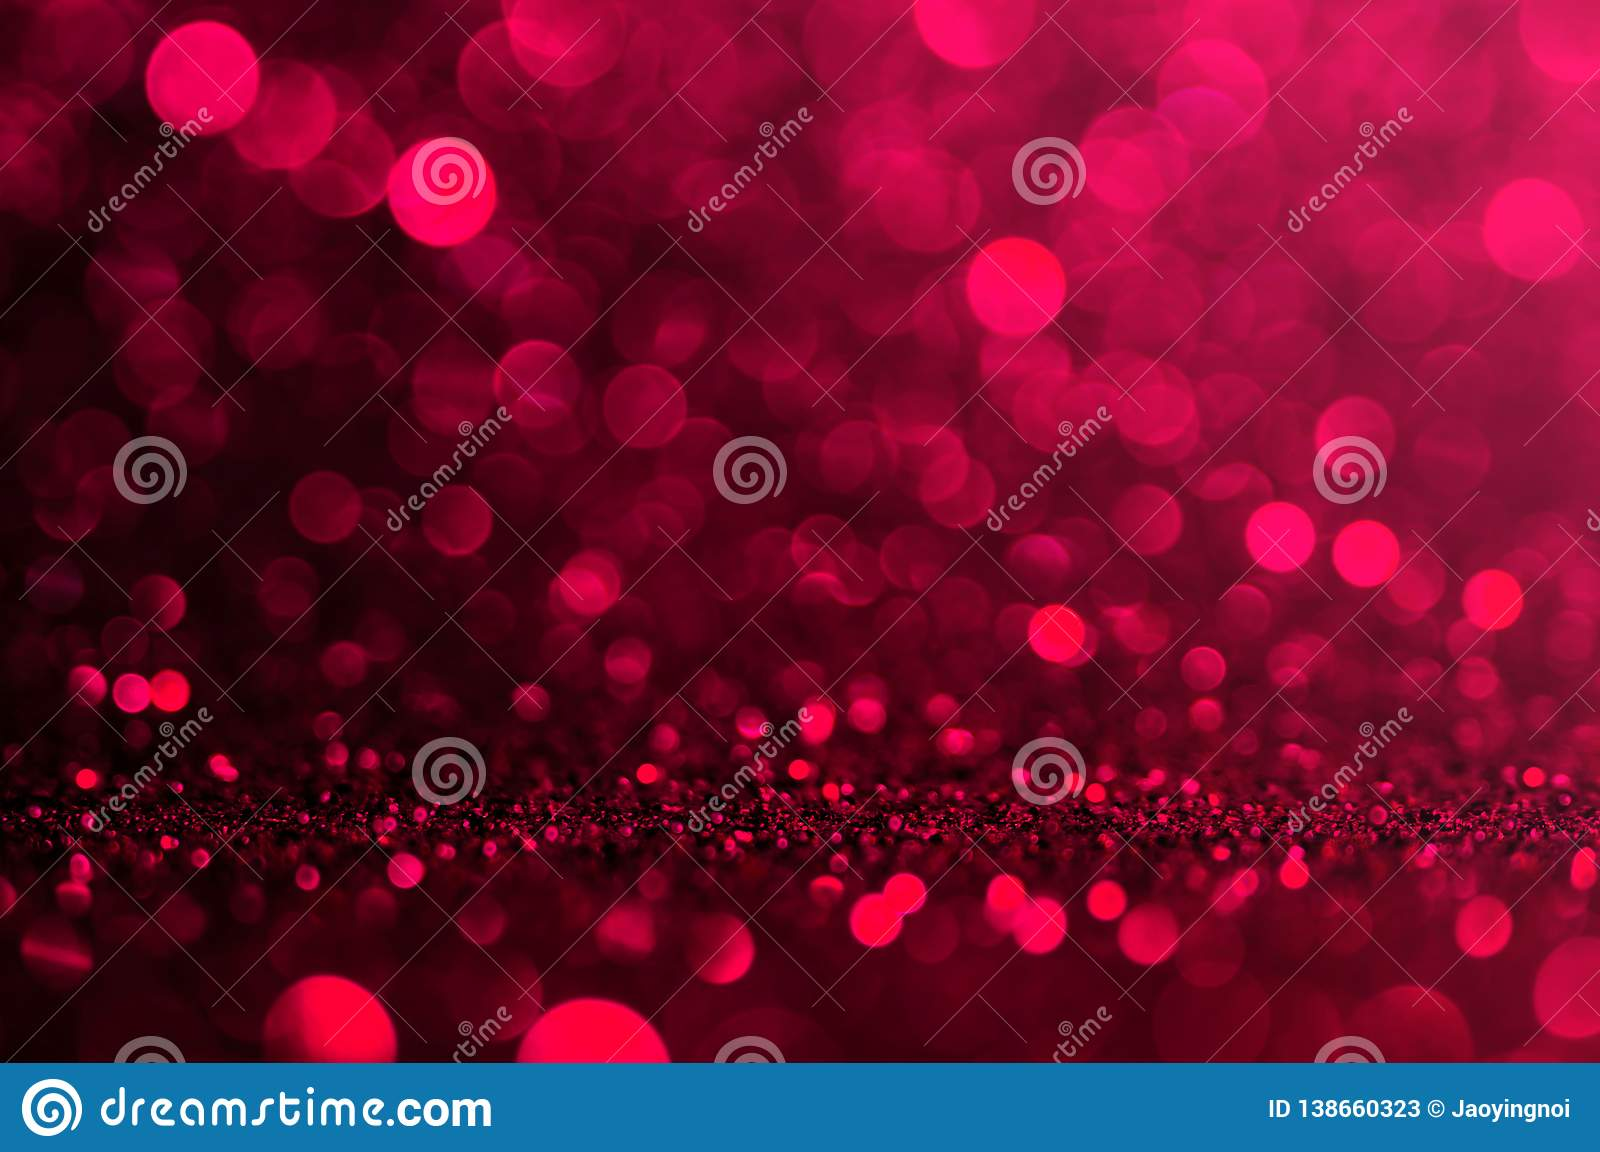 Soft Image Abstract Bokeh Dark Red With Light Background Red